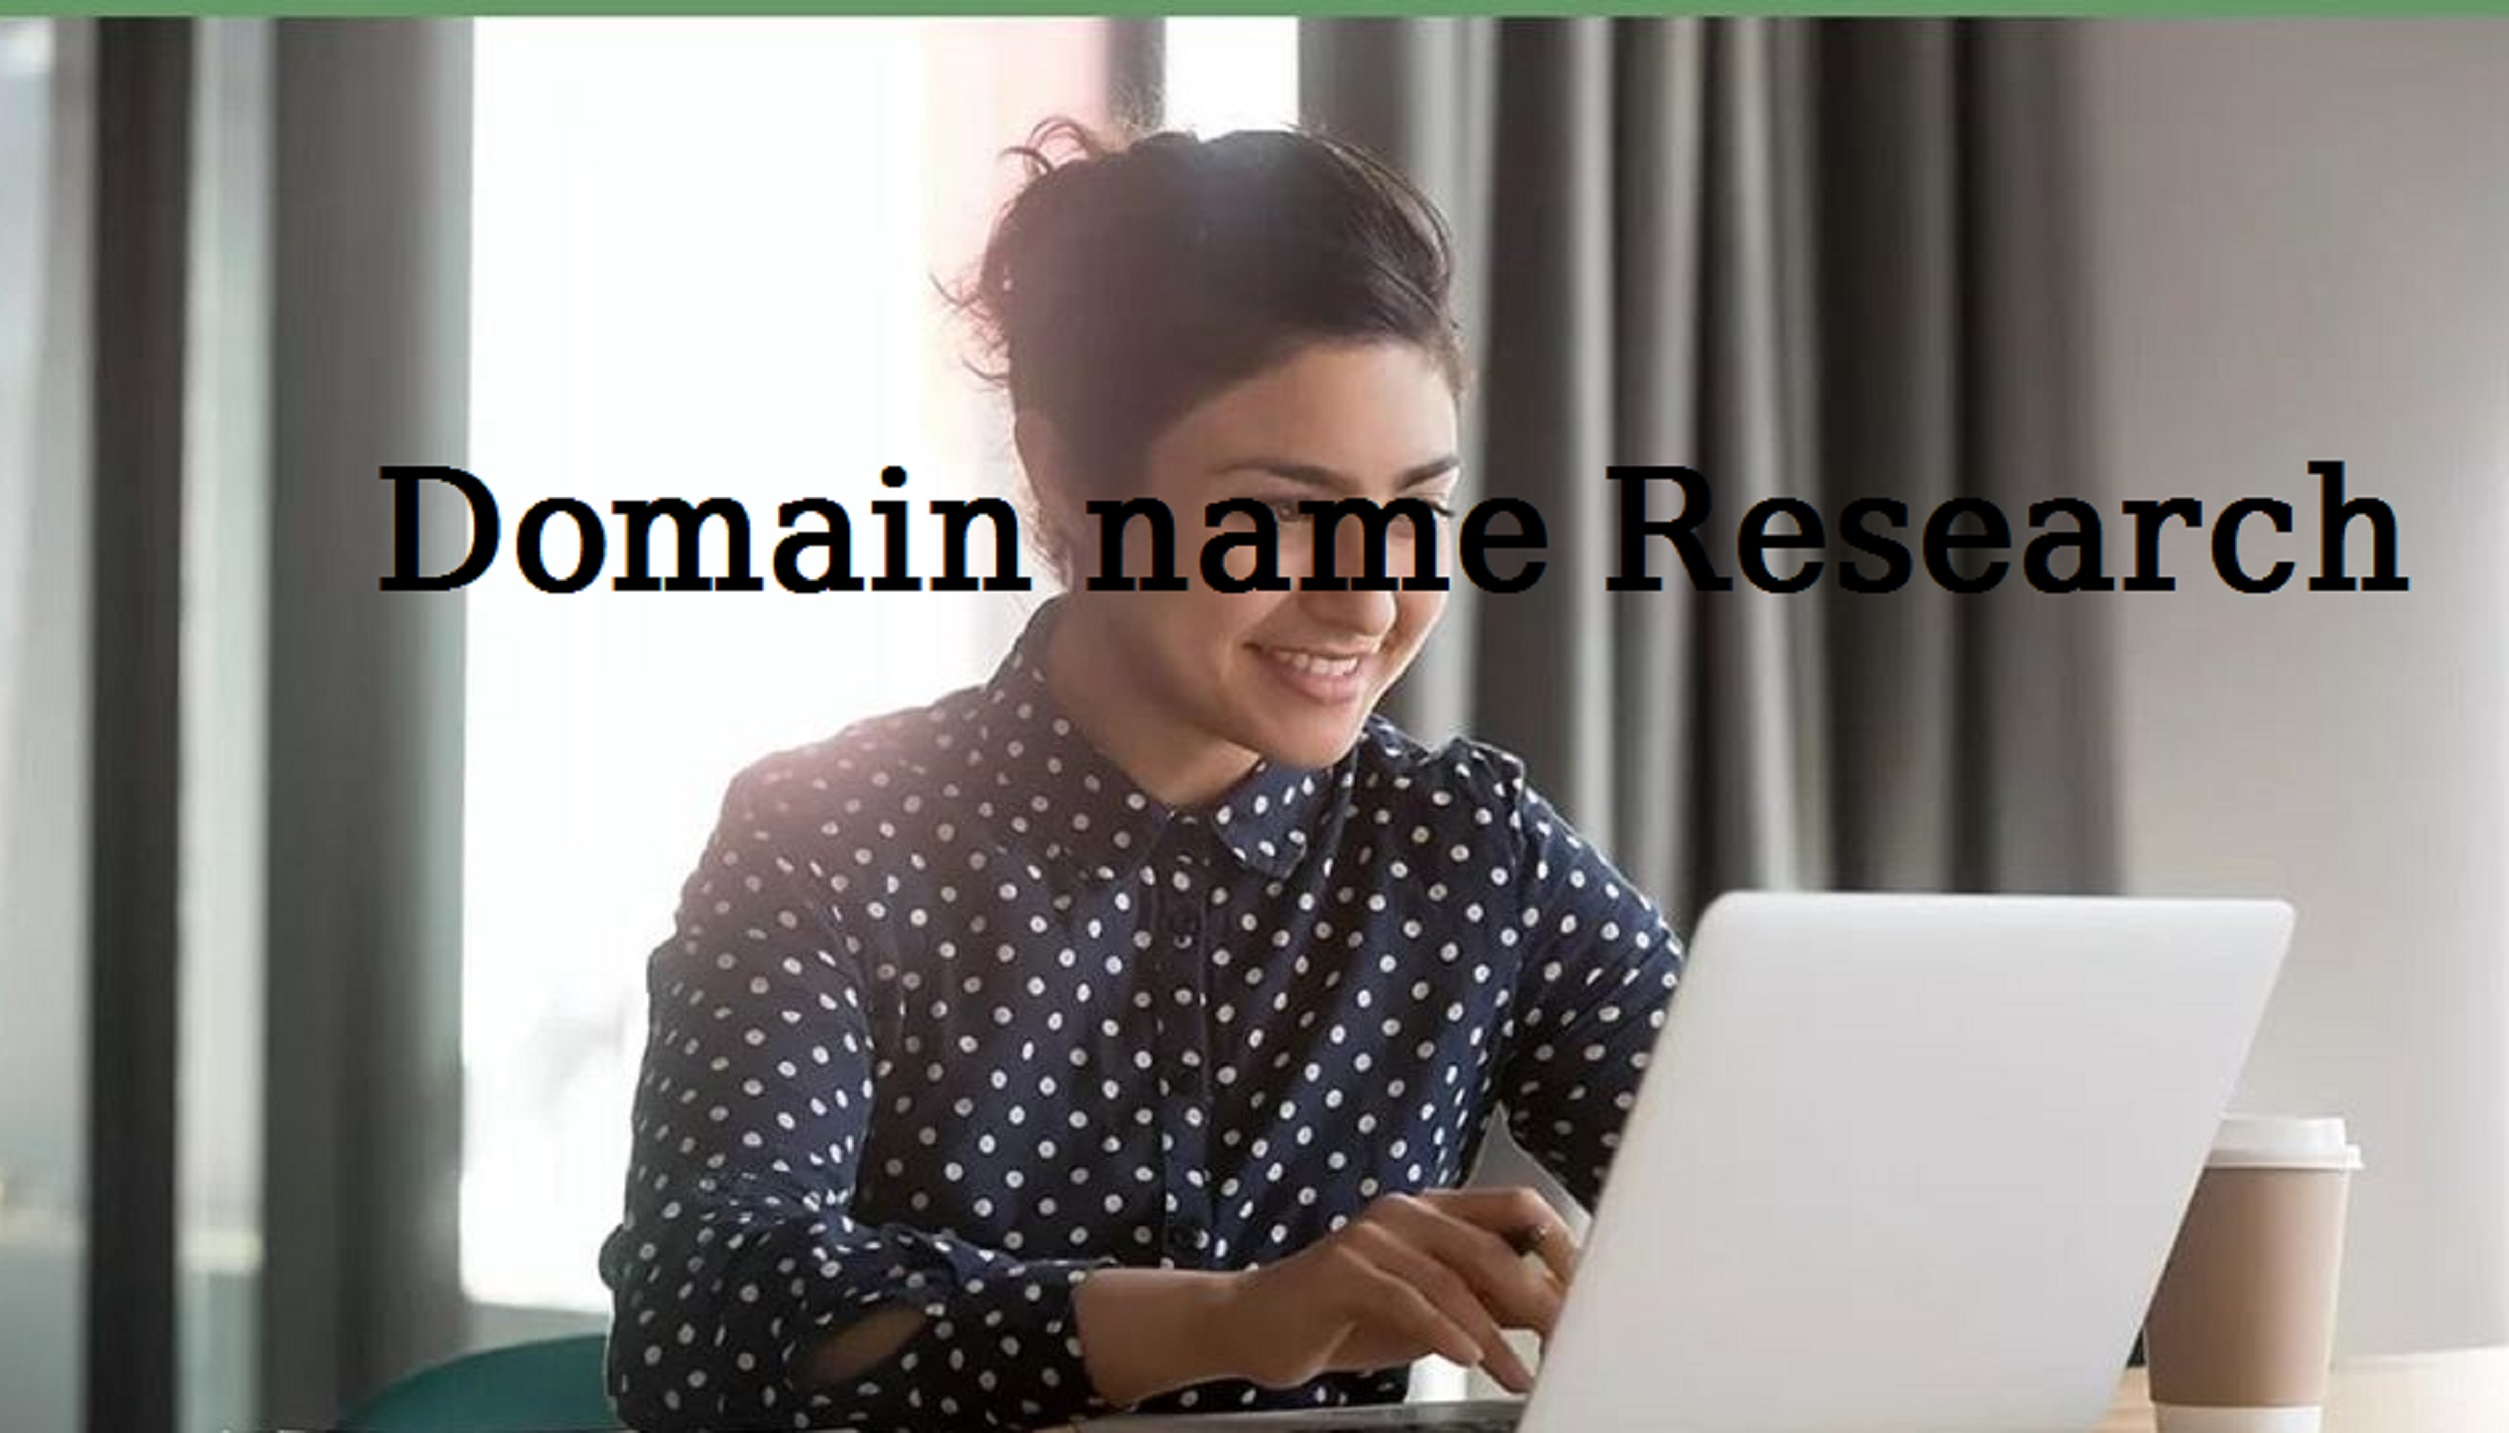 Domain name Research for personal or business